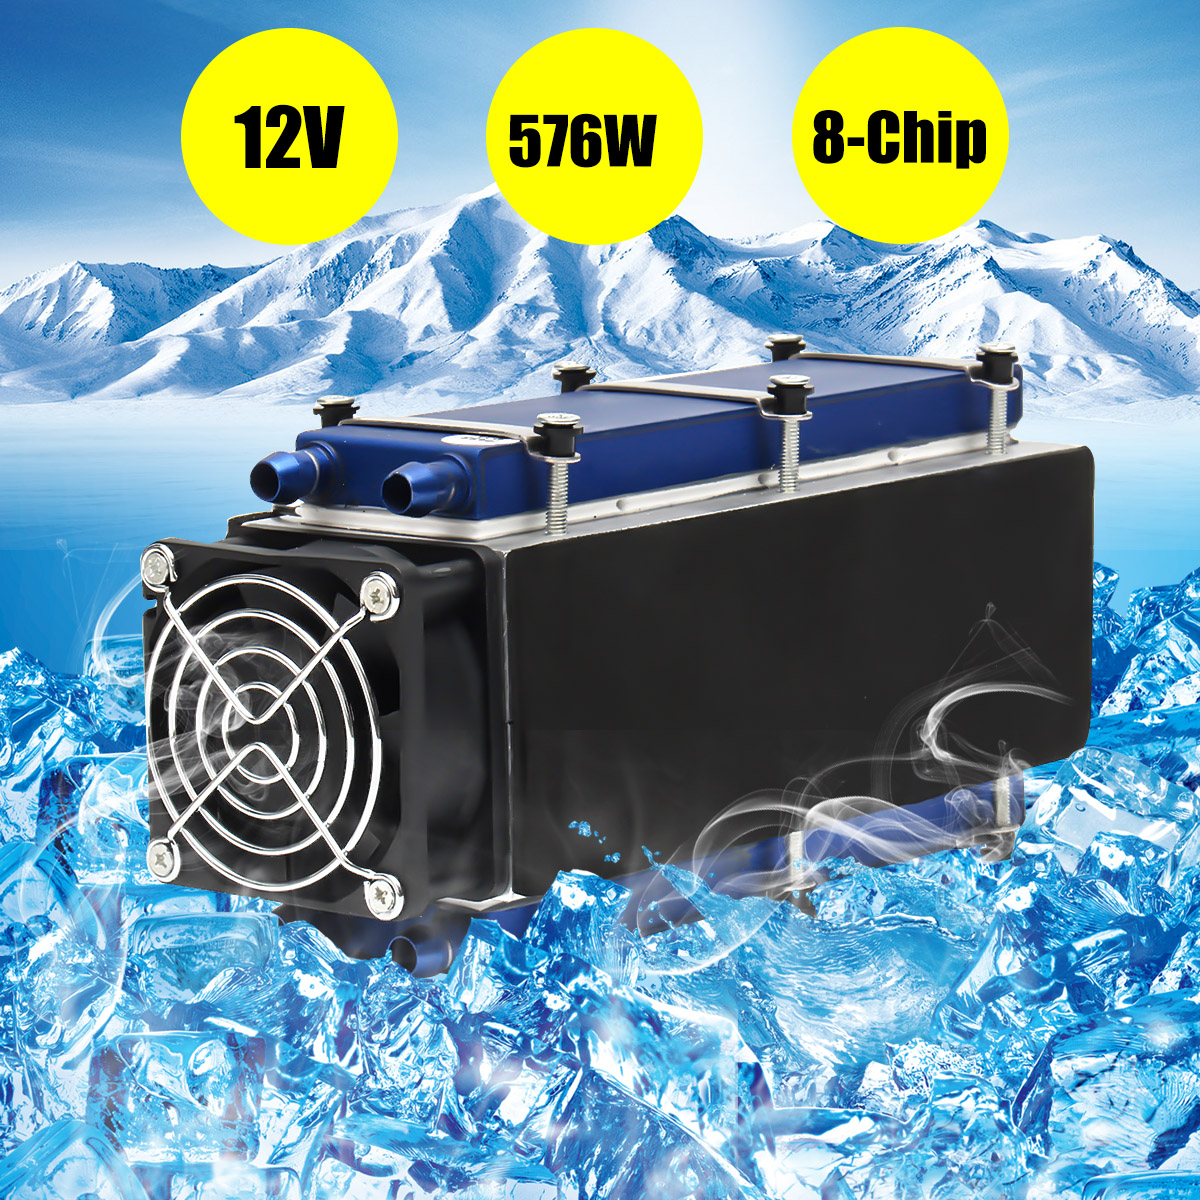 12V Thermoelectric Peltier Refrigeration Cooling System Kit Cooler for DIY TEC-12706 Mini Air Conditioner Integrated Circuits 5 pcs qdzh35g r134a 12v cooling compressor for marine refrigeration unit